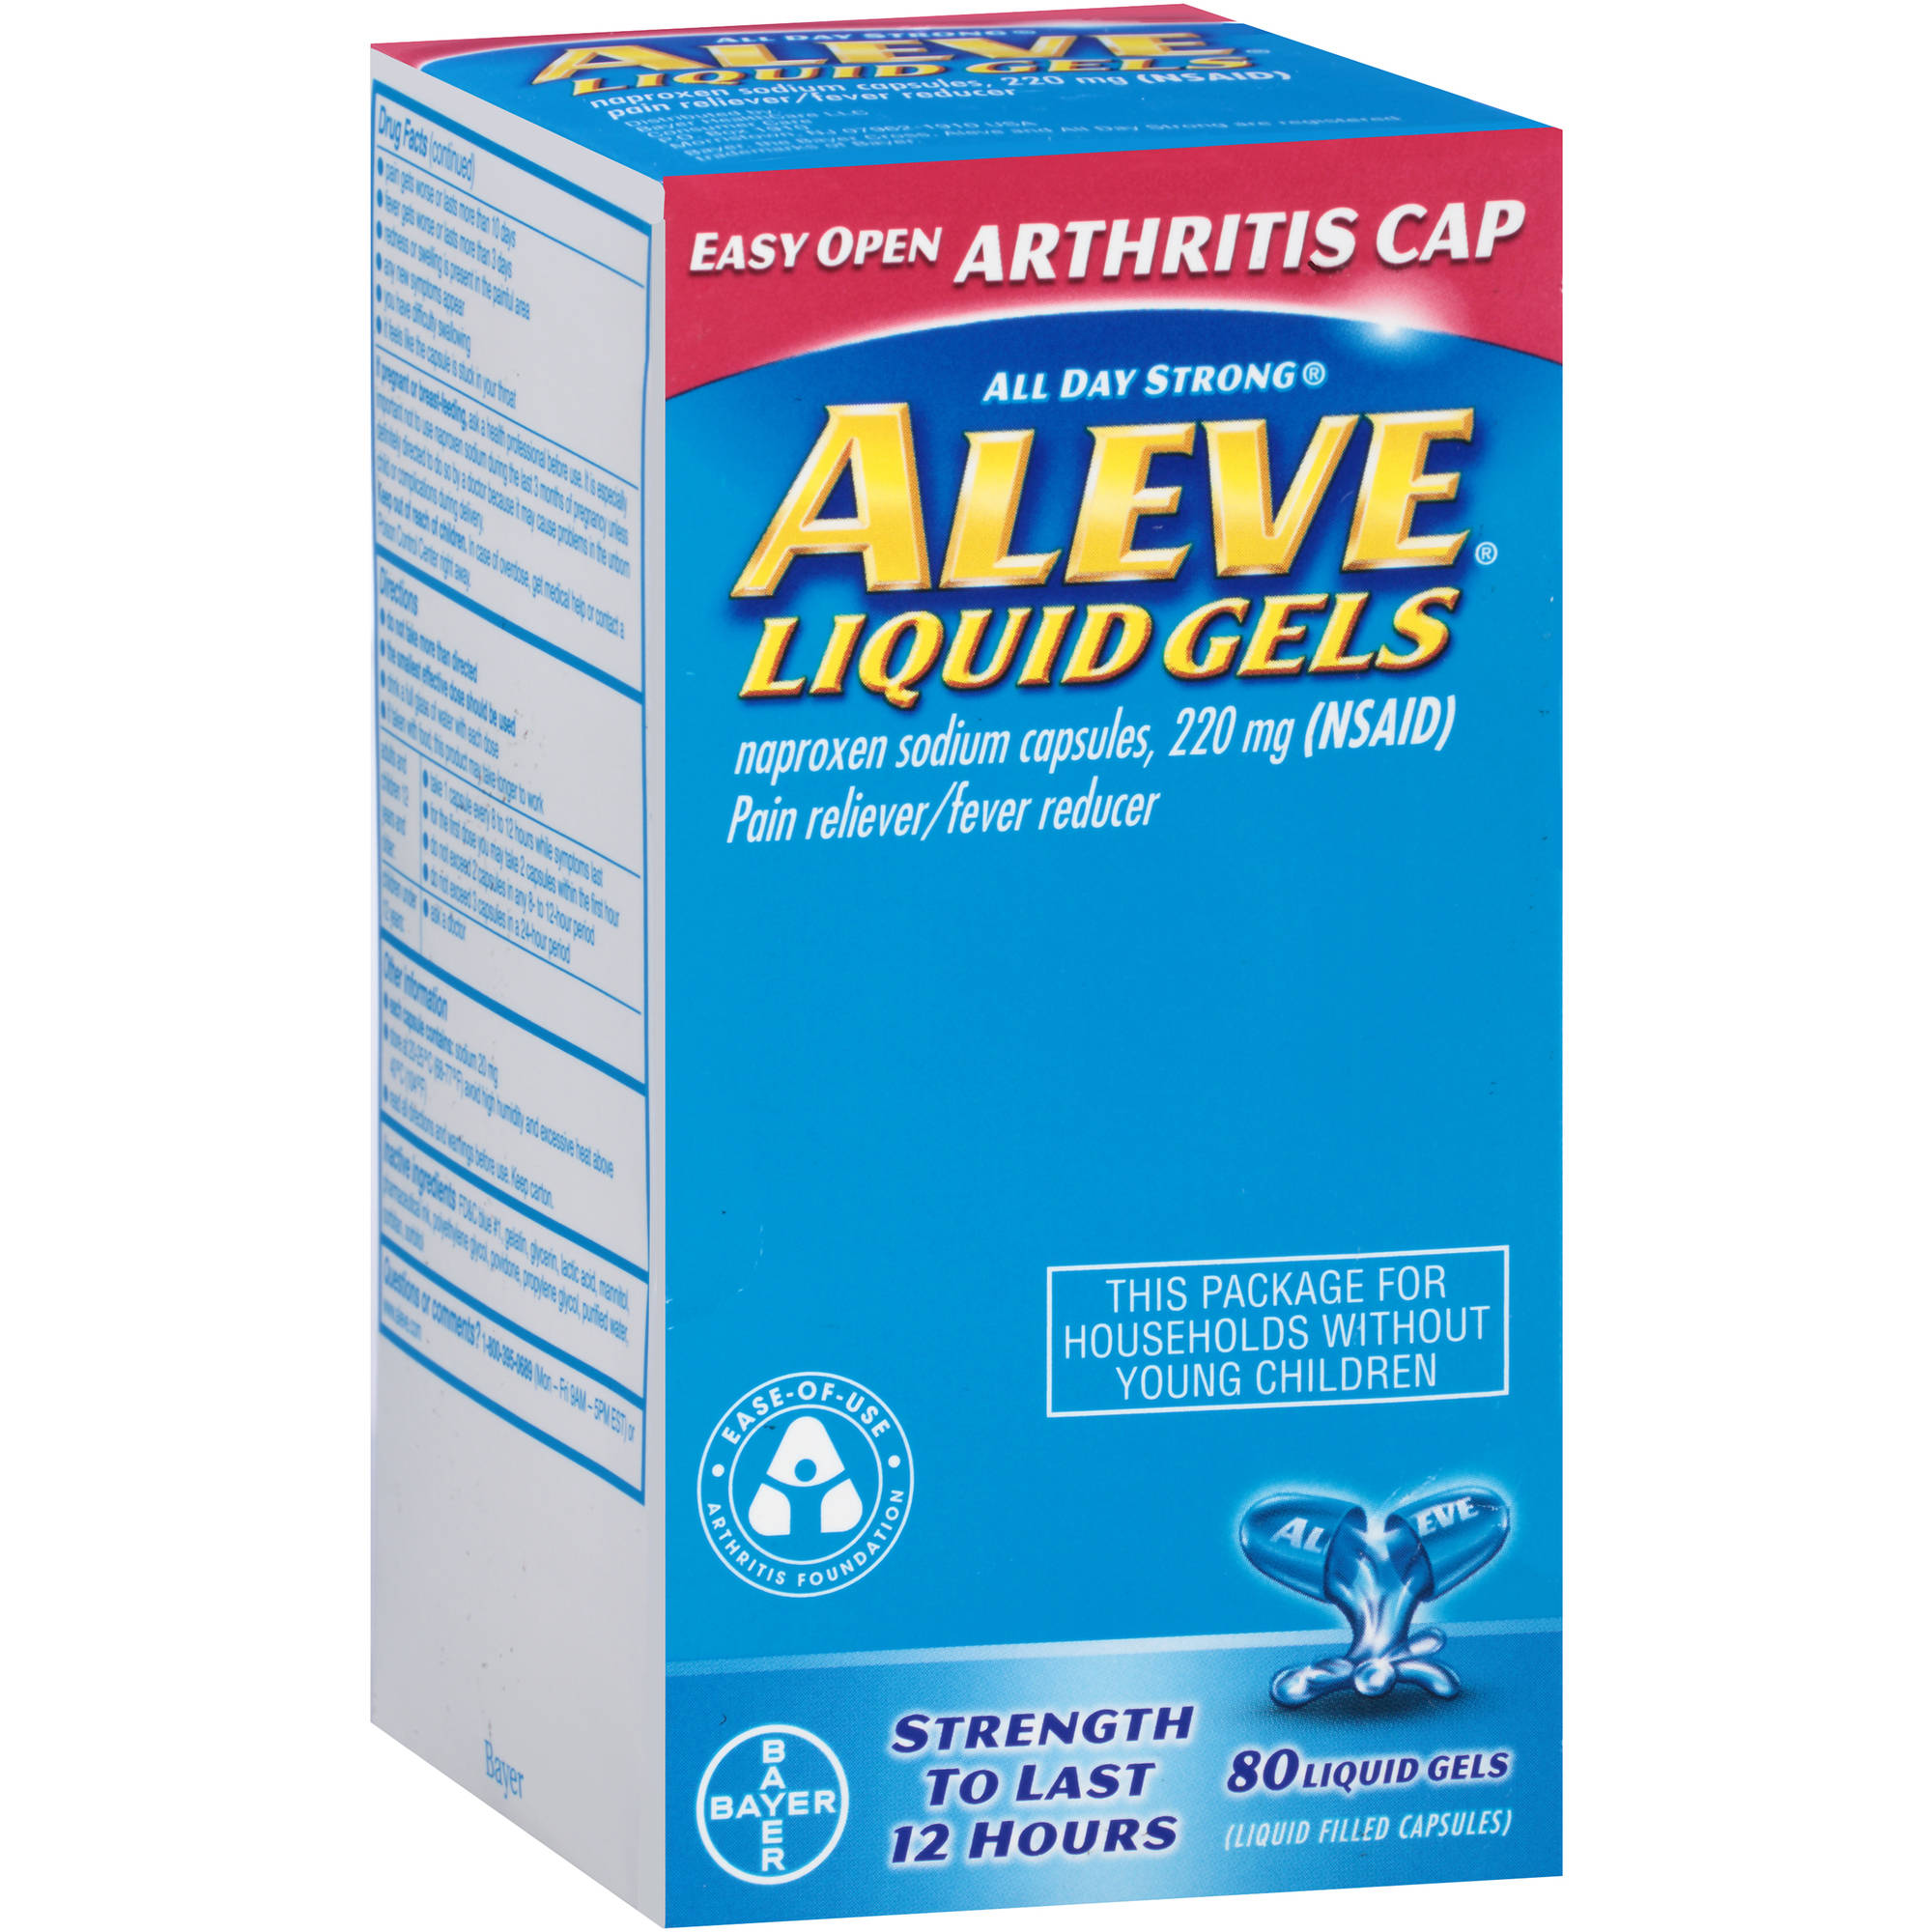 Aleve Arthritis Naproxen Pain Reliever/Fever Reducer 220mg, 80ct